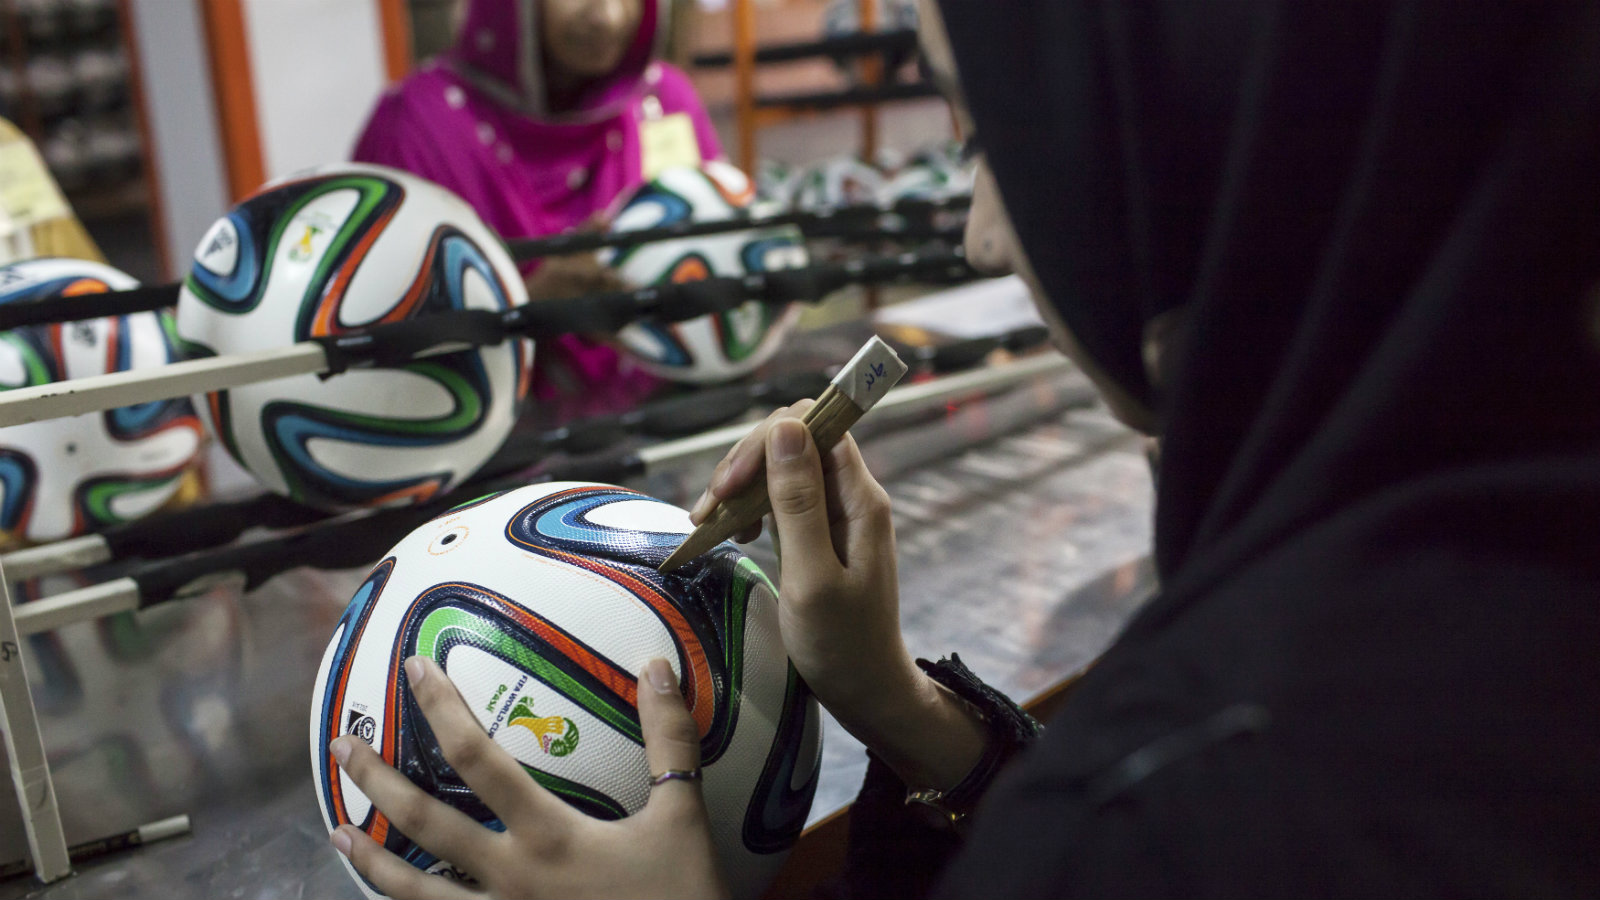 An employee conducts the final check to fix any cavity in the seams of a ball inside the soccer ball factory that produces official match balls for the 2014 World Cup in Brazil, in Sialkot, Punjab province May 16, 2014. It was when he felt the roar of the crowd at the 2006 World Cup in Germany that Pakistani factory owner Khawaja Akhtar first dreamt up a goal of his own: to manufacture the ball for the biggest soccer tournament on the planet. Last year he finally got his chance - but only 33 days to make it happen. Picture taken May 16.